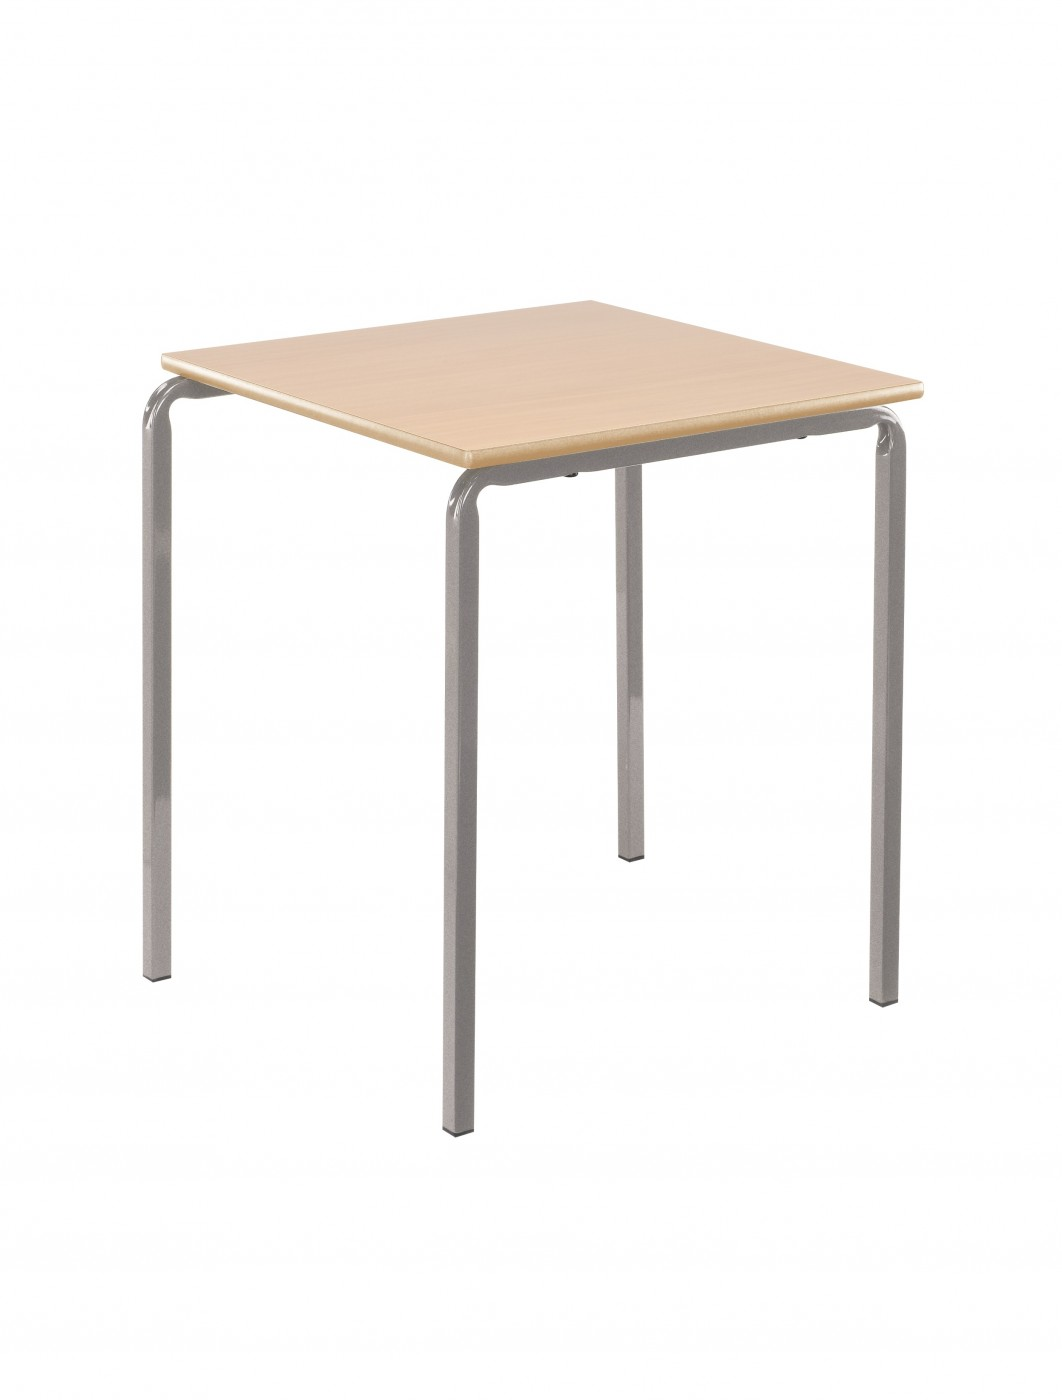 Square Stacking Table - 500x500mm Classroom Table CBSQ-55-MD